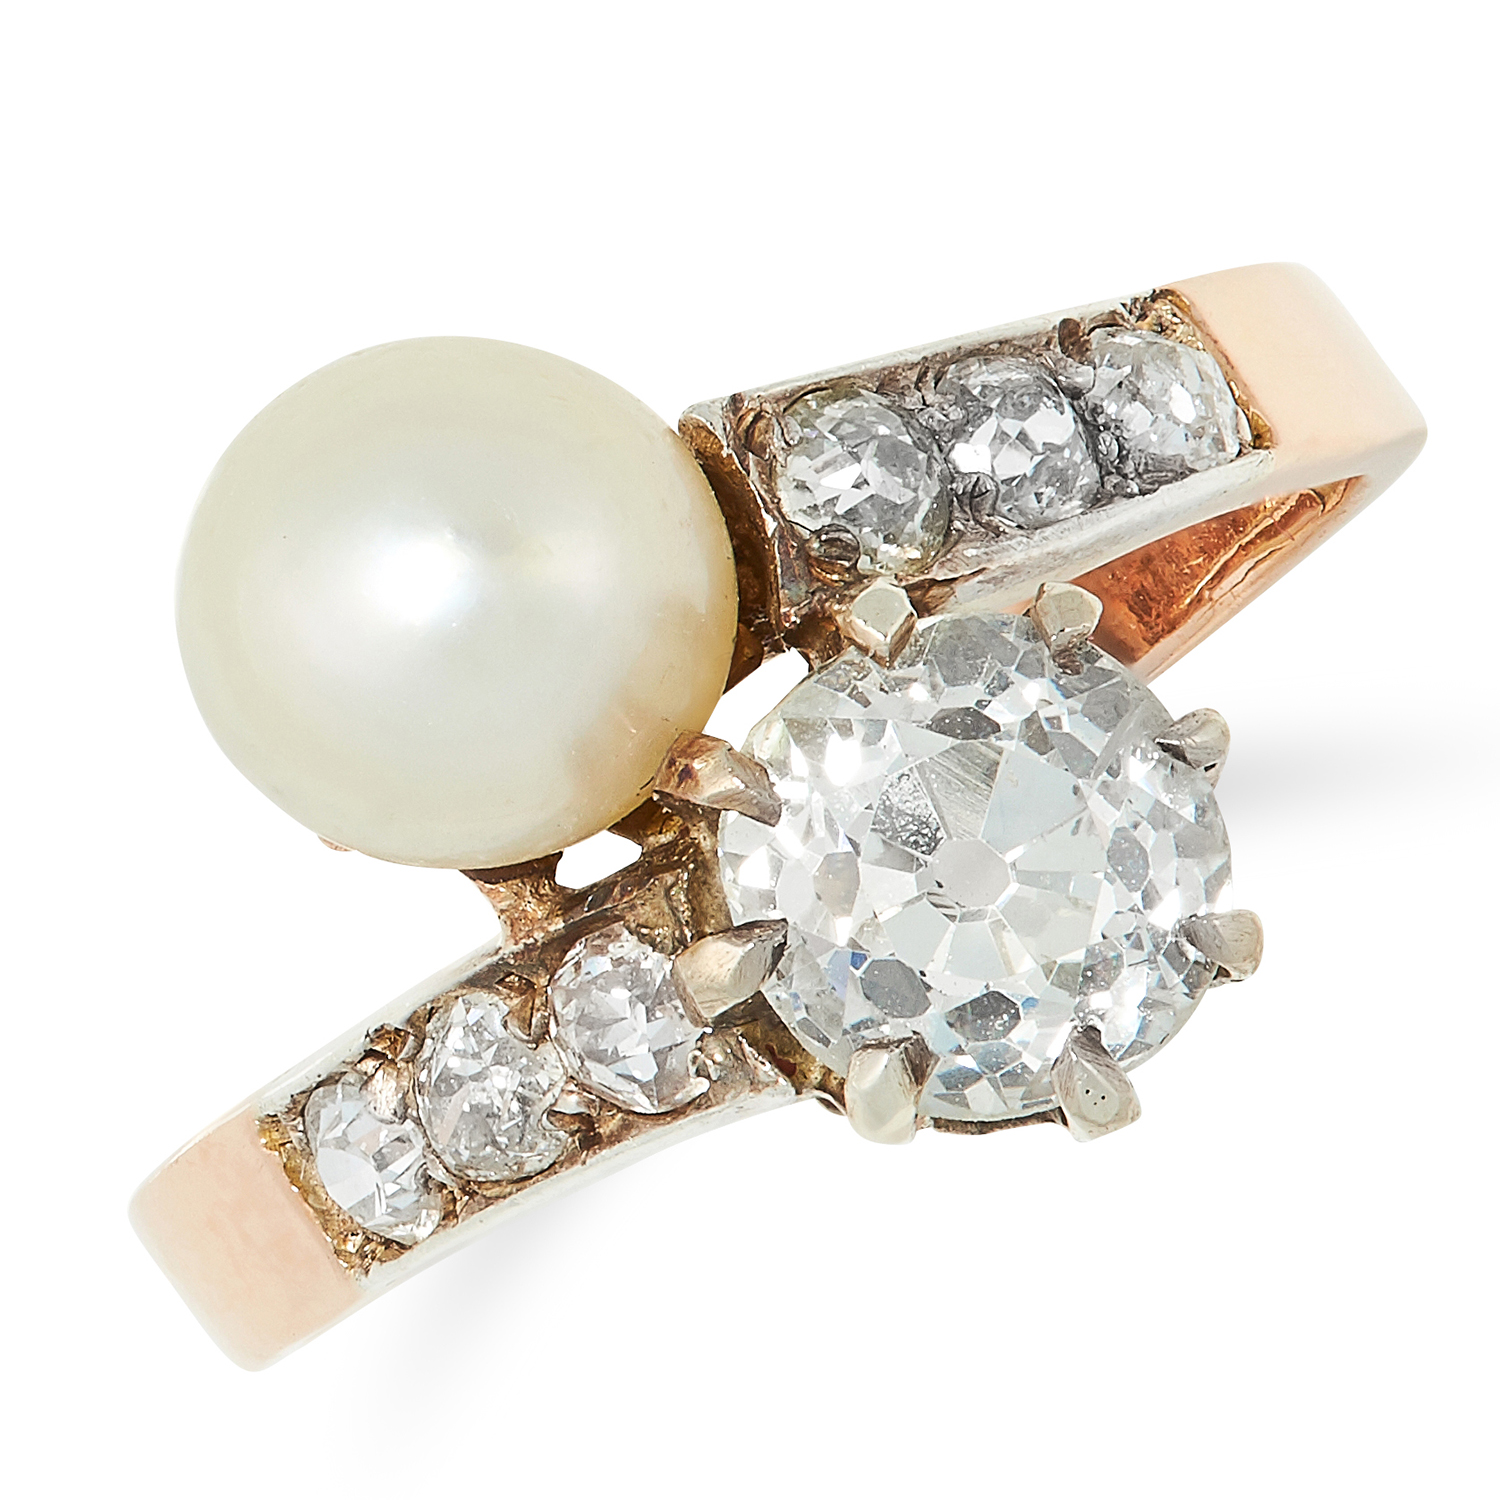 AN ANTIQUE PEARL AND DIAMOND TOI ET MOI RING set with an old cut diamond of 1.12 carats and a